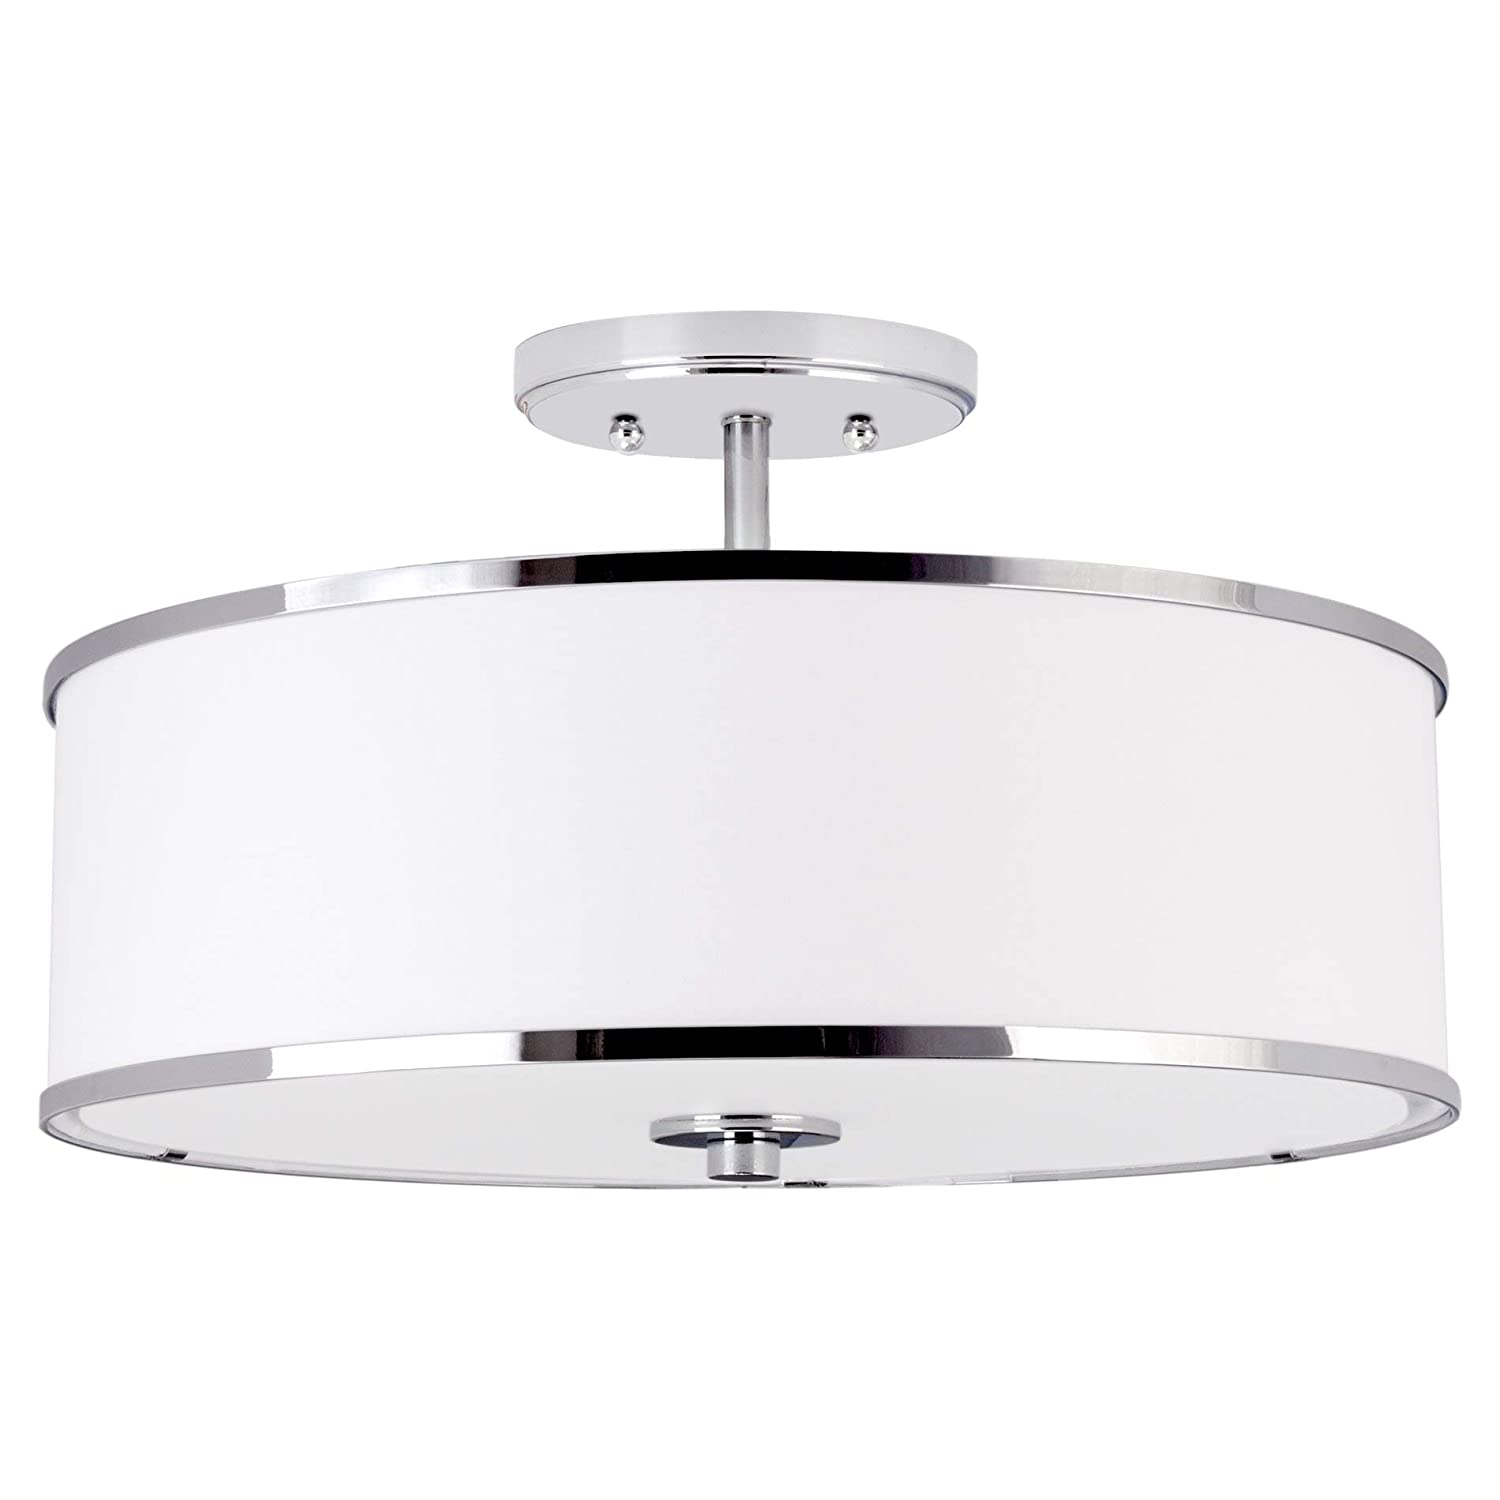 "Kira Home Chloe 15"" Retro Modern 3-Light Semi-Flush Mount Ceiling Light + White Drum Shade, LED Compatible, Round Tempered Glass Diffuser, Chrome Trim Finish"